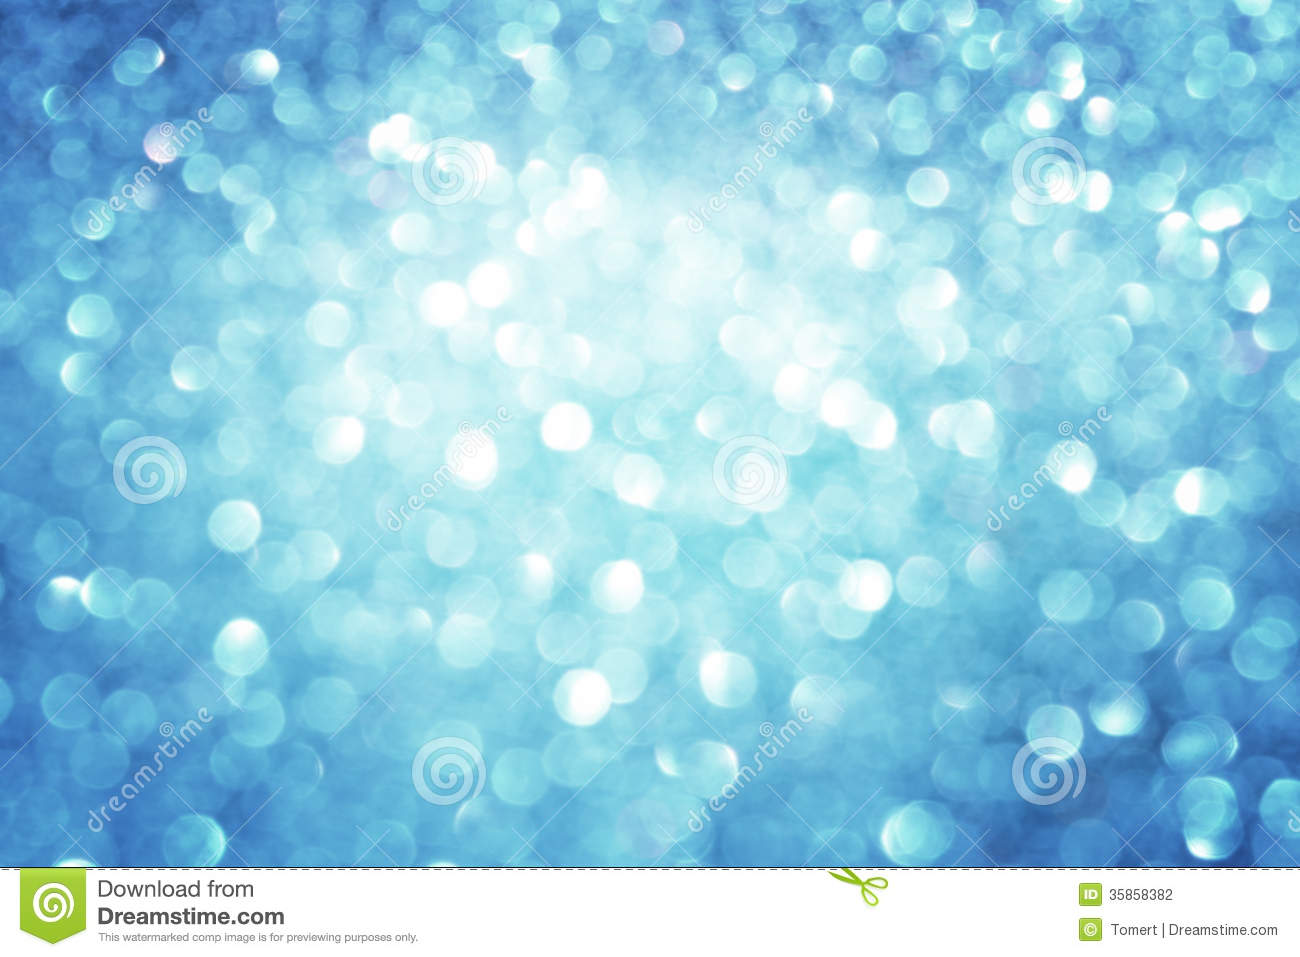 Silver and golden background of defocused abstract lights bokeh - Abstract Blue Bokeh Lights Defocused Background Of Blue